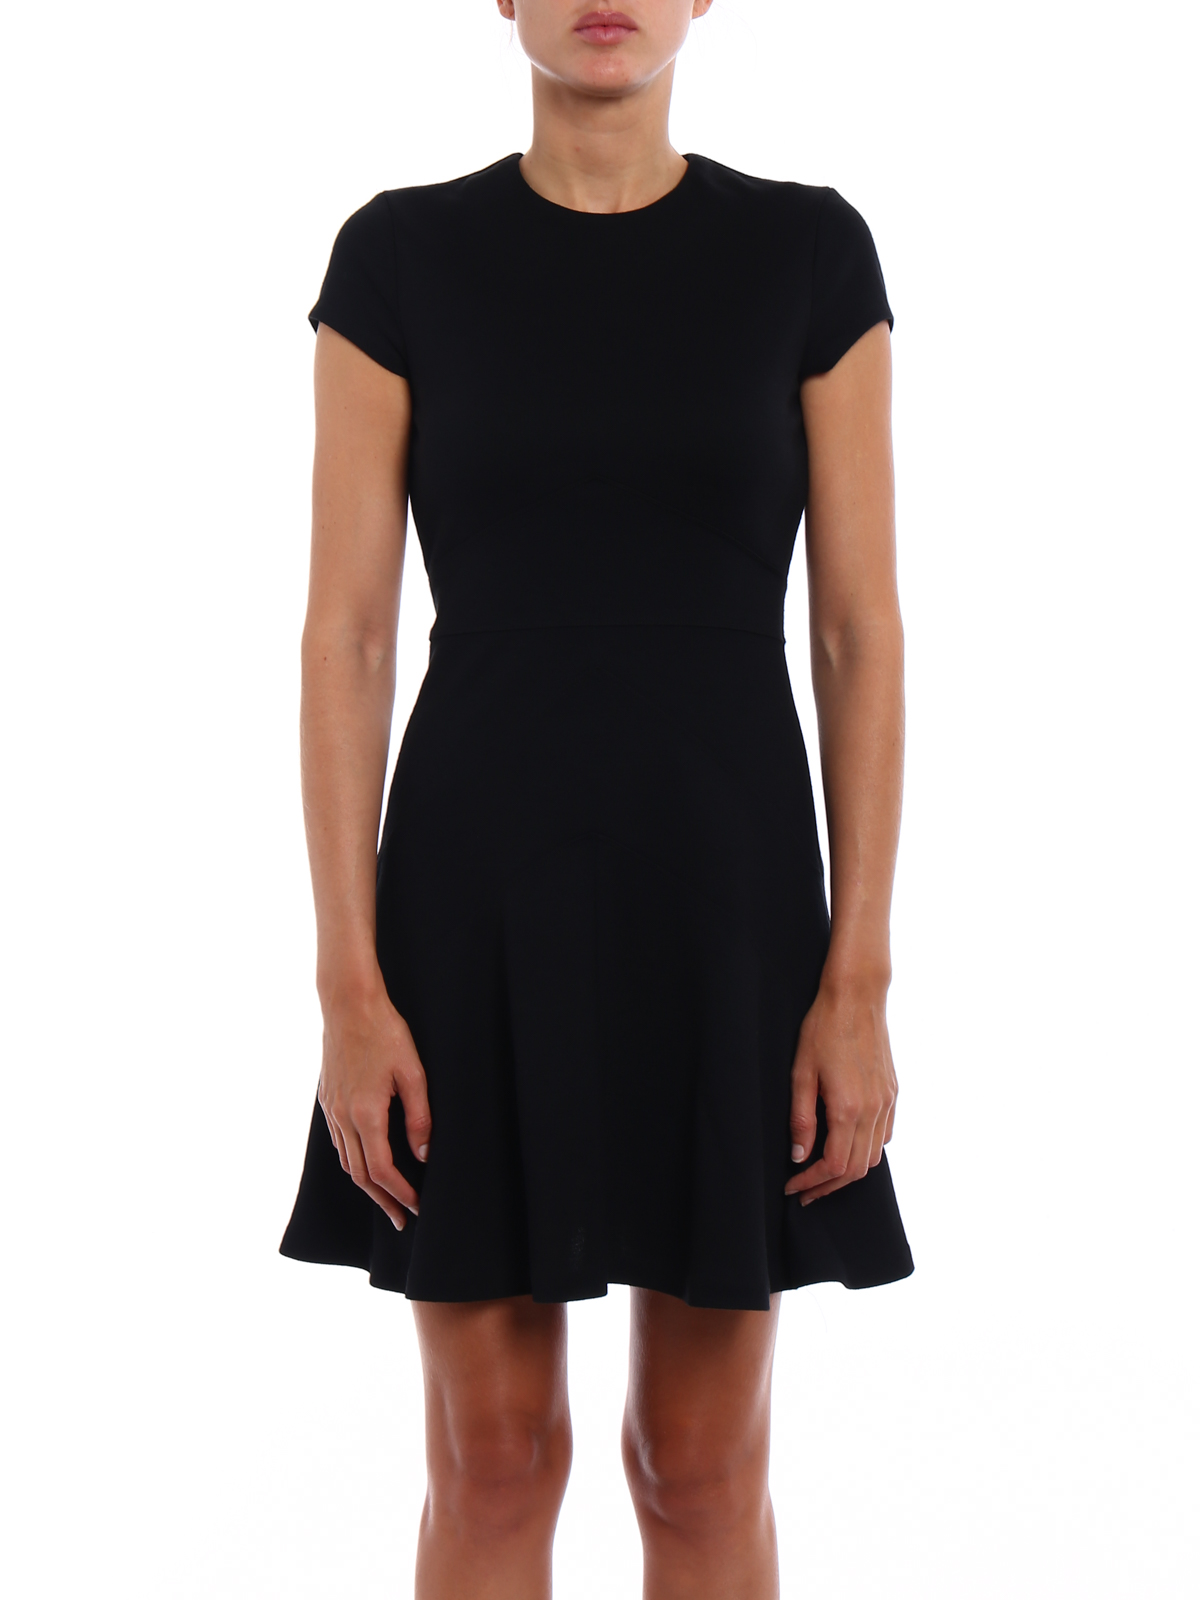 04e1dee01f516 dsquared2-online-short-dresses-knitted-wool -blend-fitted-dress-00000113929f00s032.jpg